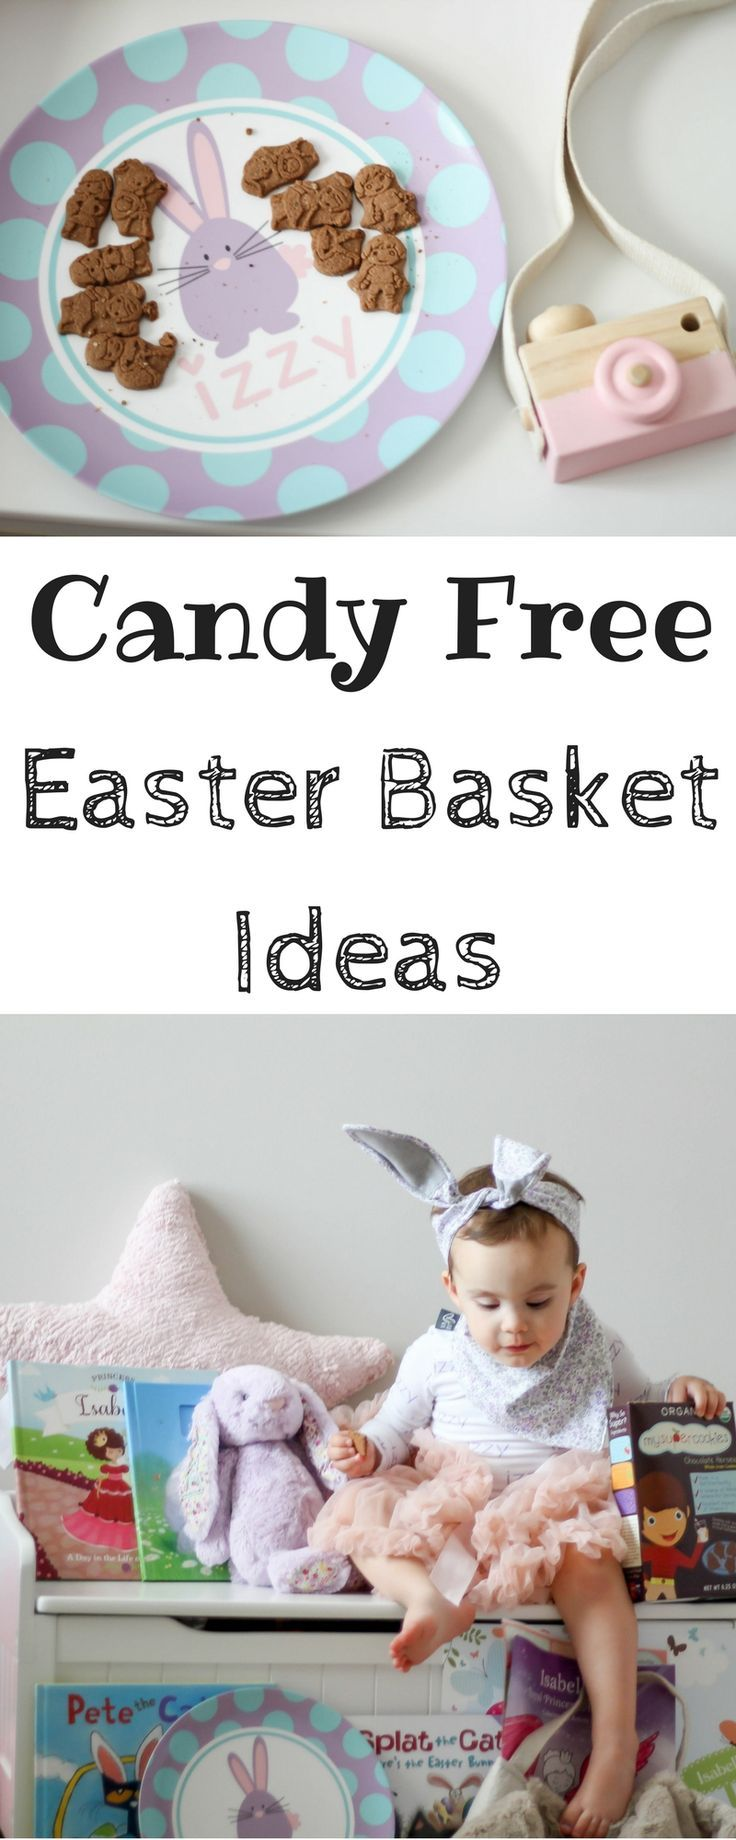 The 25 best baby easter basket ideas on pinterest easter candy free easter basket ideas toddler and kid easter baskets first easter bunny ears easter outfits baby easter basket busylittleizzy personalized gifts negle Gallery